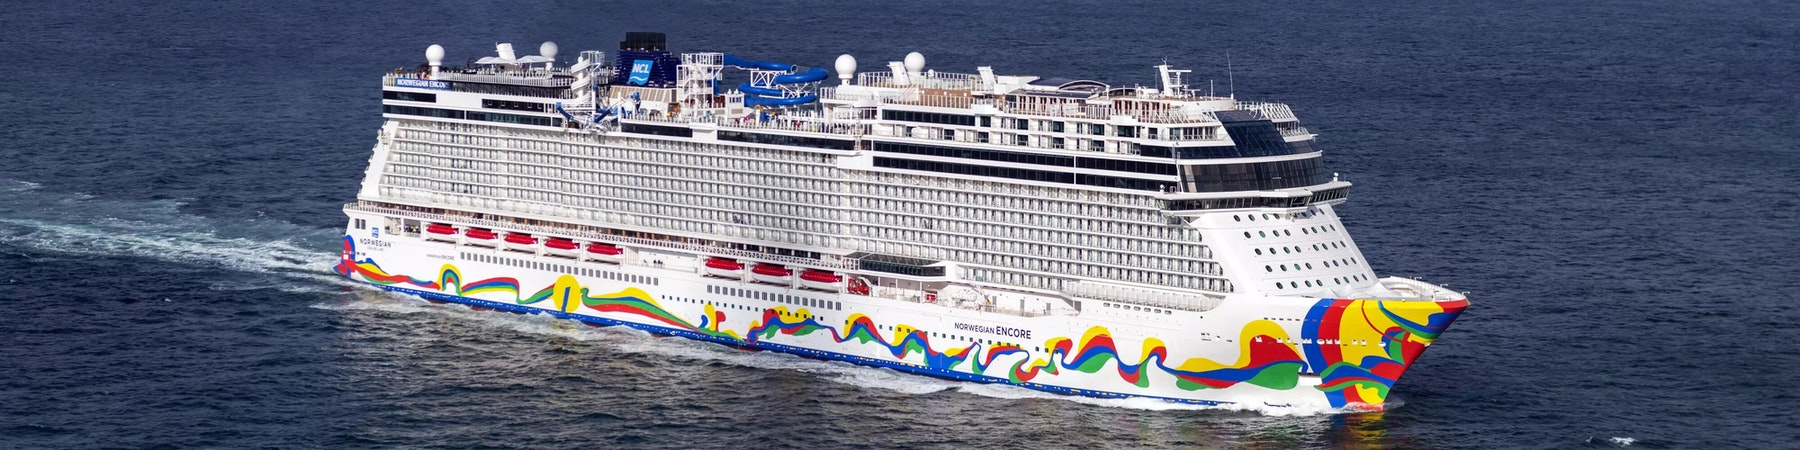 Upcoming Norwegian Ncl Cruises 2021 Prices Itineraries Activities On Cruise Critic